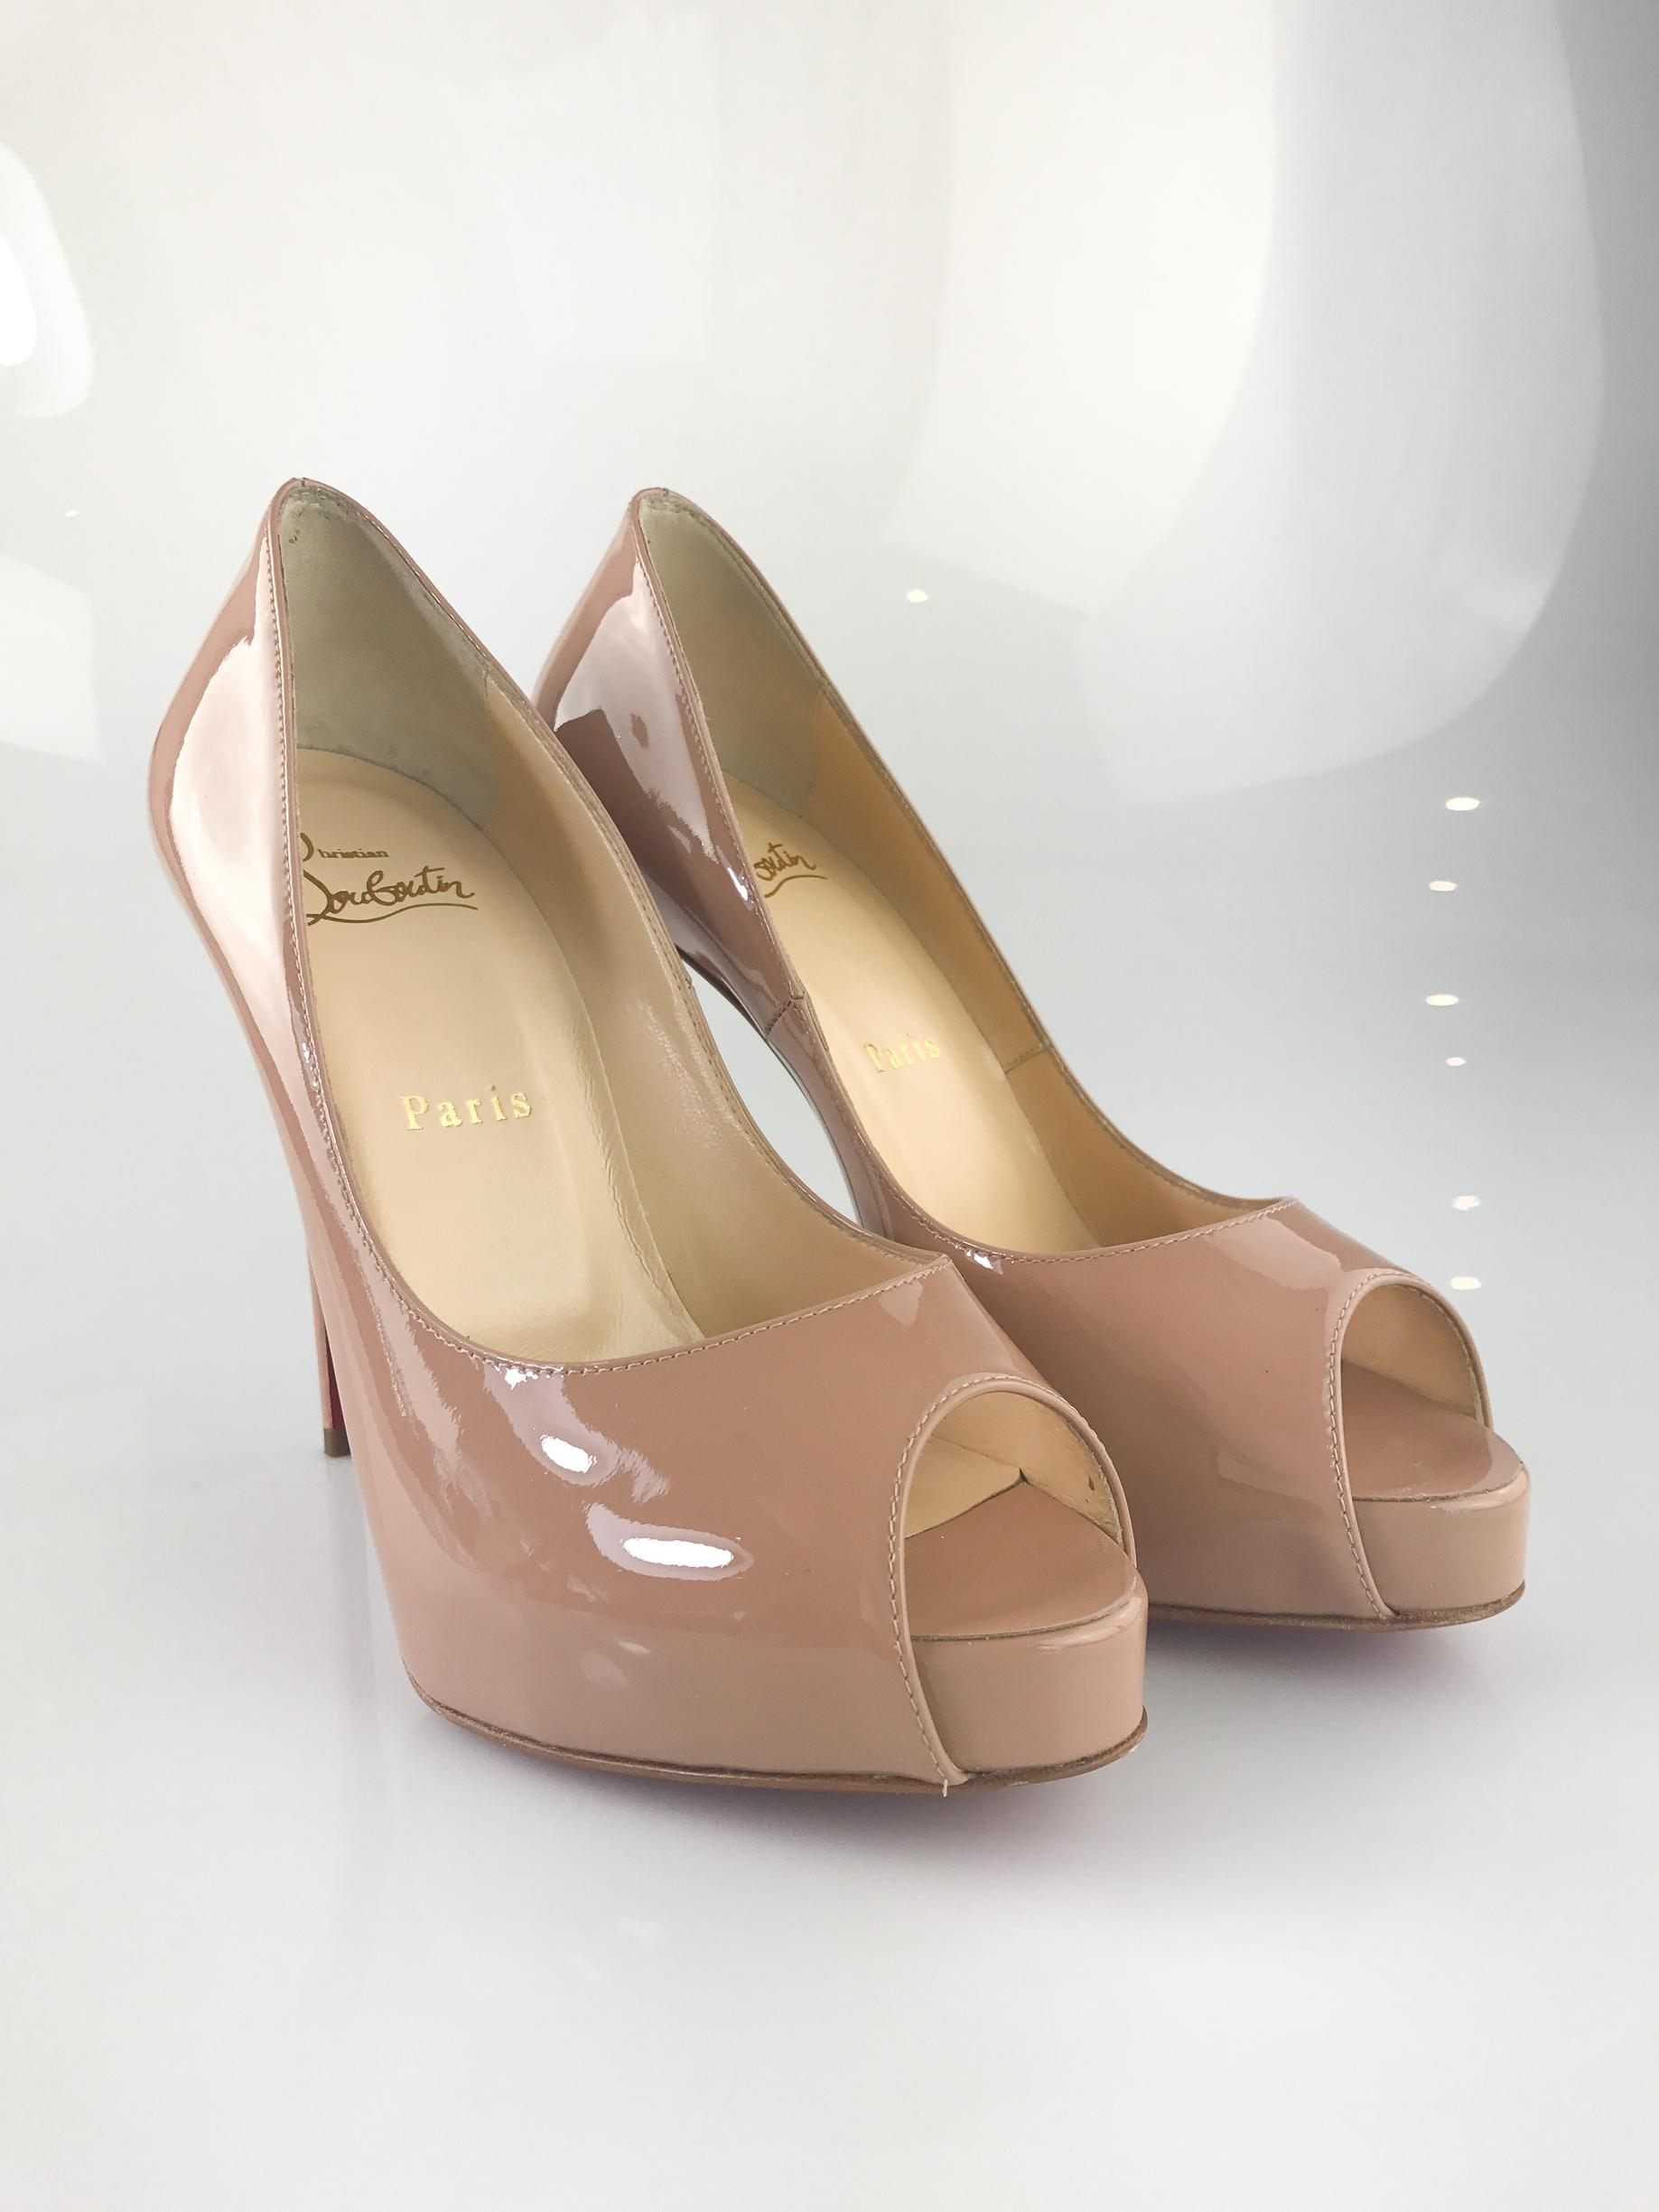 f2316c8fa2bf Christian Louboutin Nude New Very Prive 120 Pumps Size EU EU EU 37 (Approx.